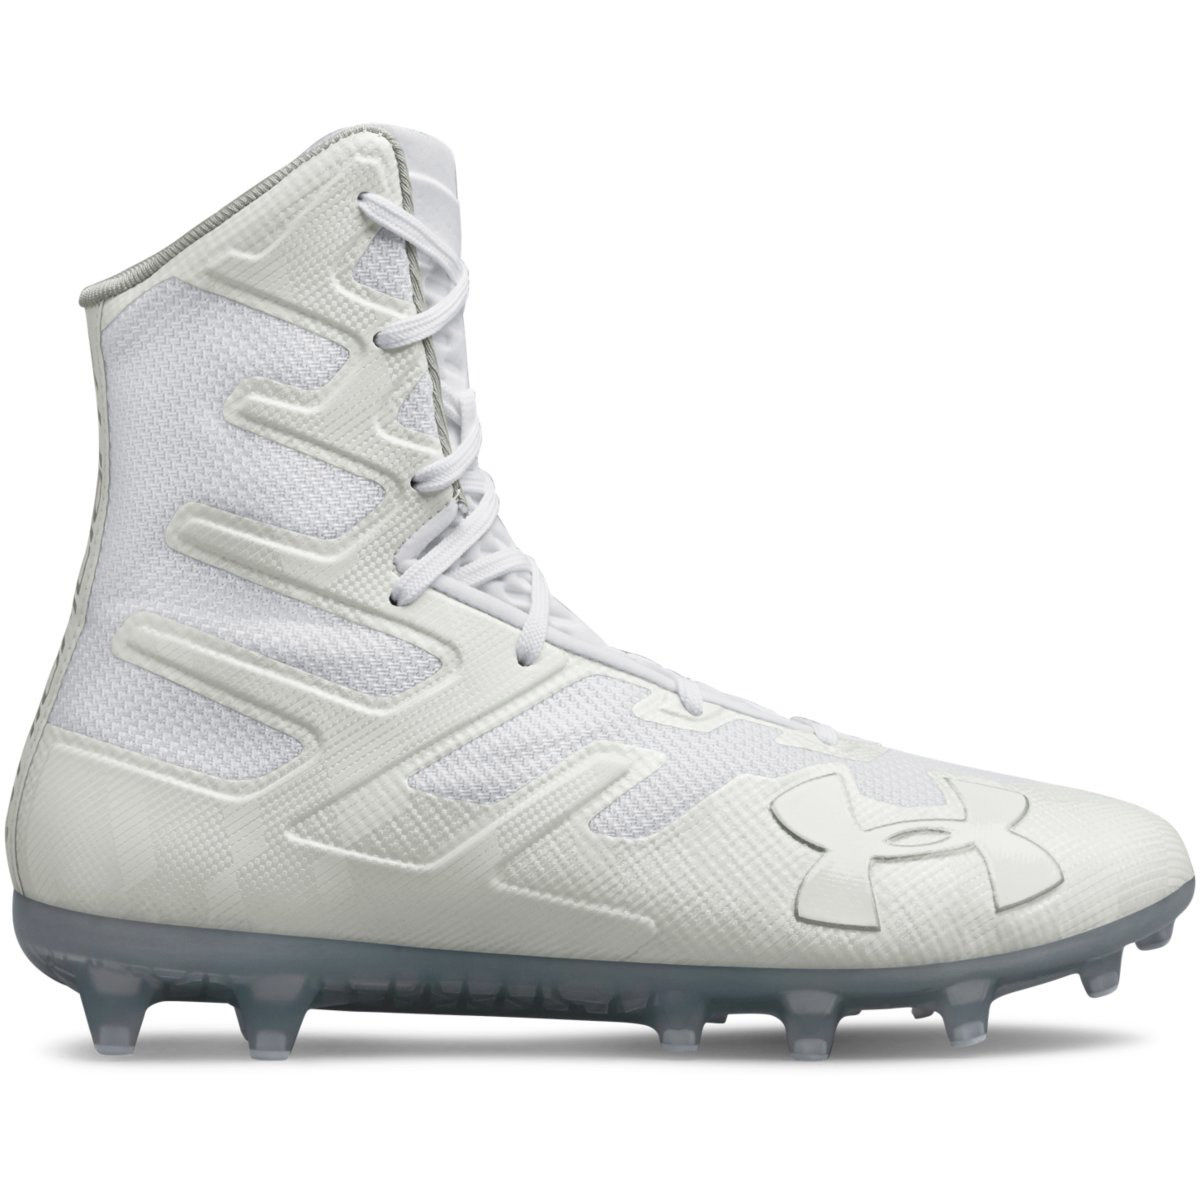 Under Armour Highlight MCM Mens Lacrosse Cleat